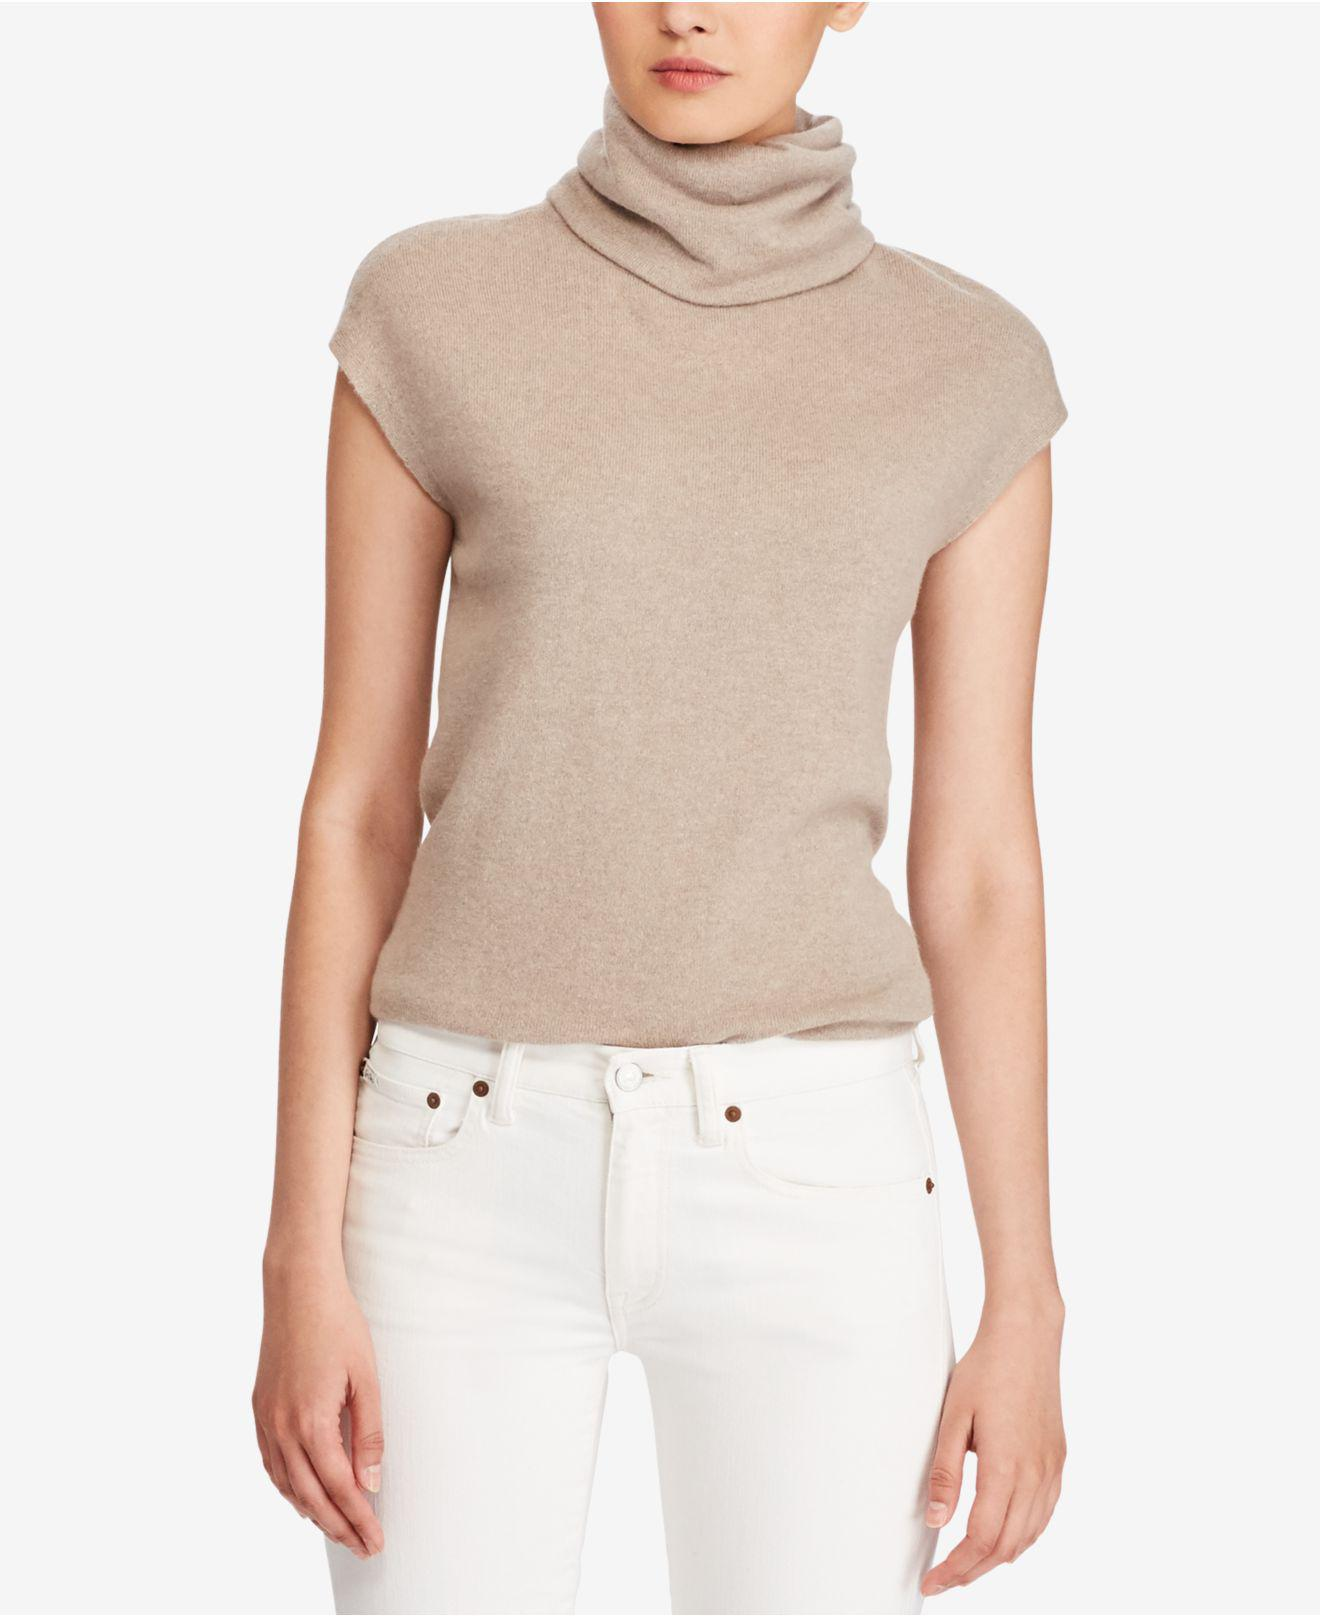 f7058a58d23e6 Lyst - Polo Ralph Lauren Cashmere Cap-sleeve Turtleneck Sweater in Brown